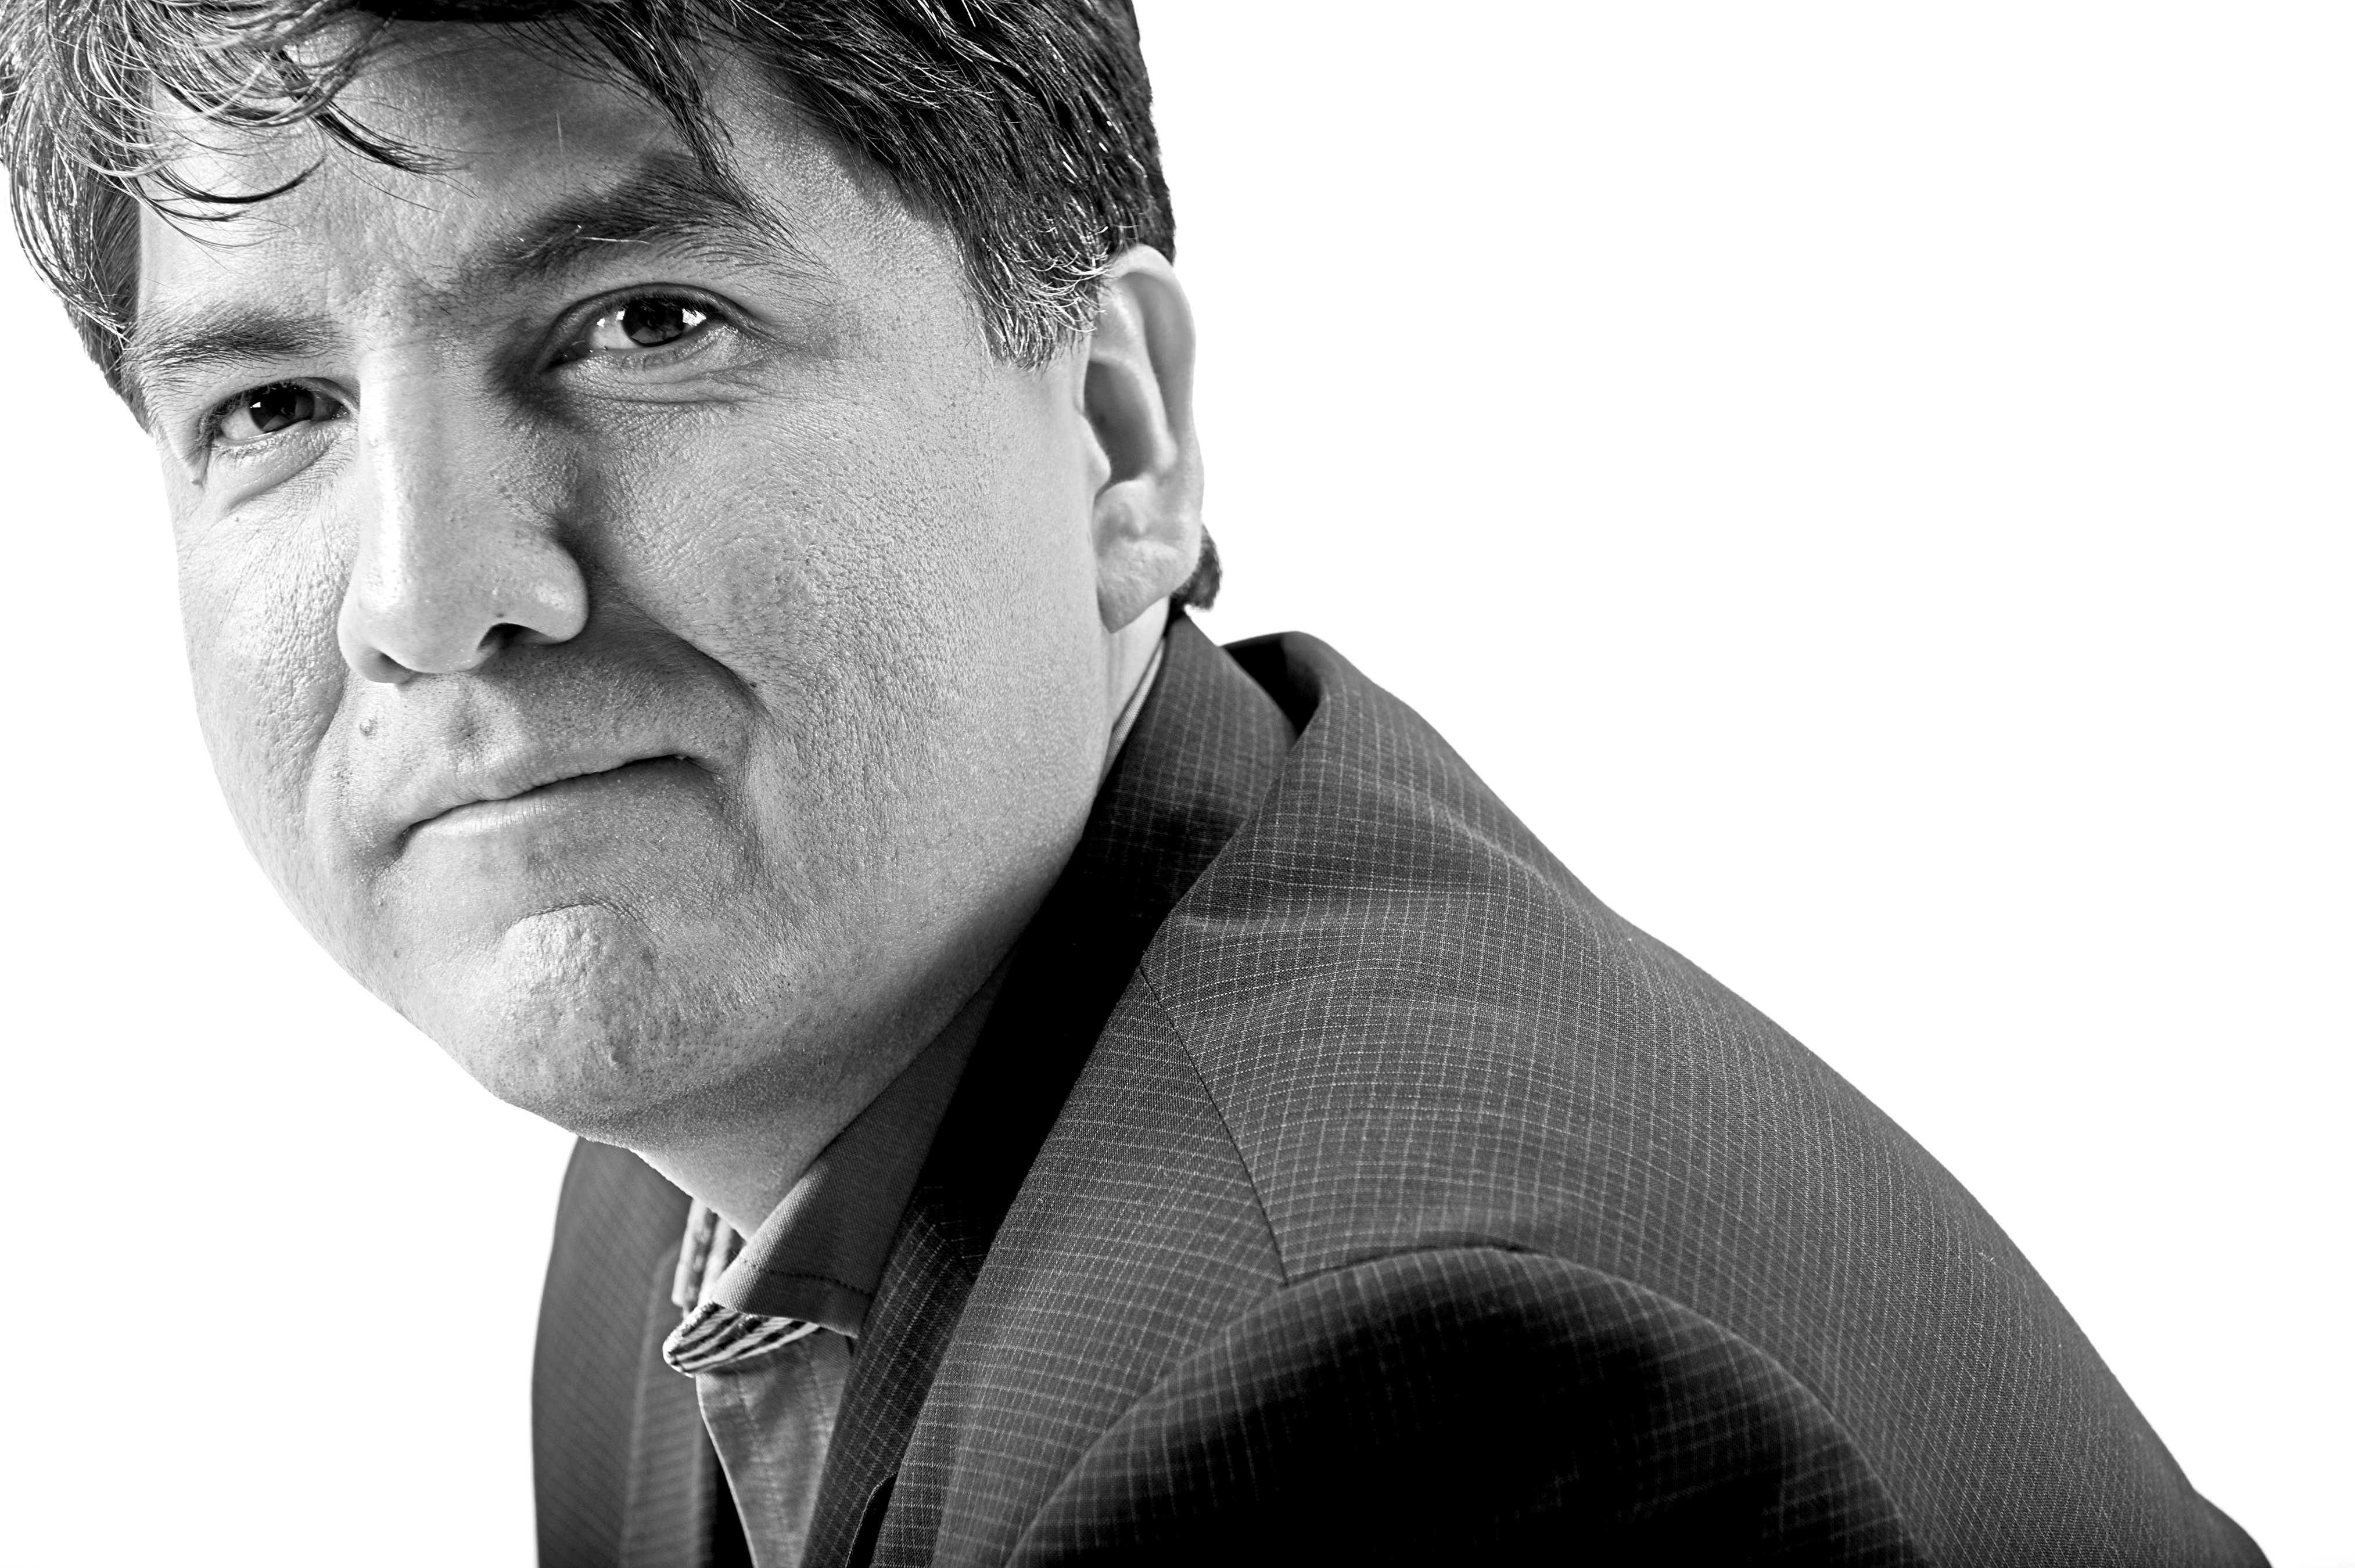 essay on indian education by sherman alexie Superman and me essay - comics essay example the shift allows alexie to elaborate on how the native american's view education and how he broke away from their views diary of a part time indian sherman alexie.